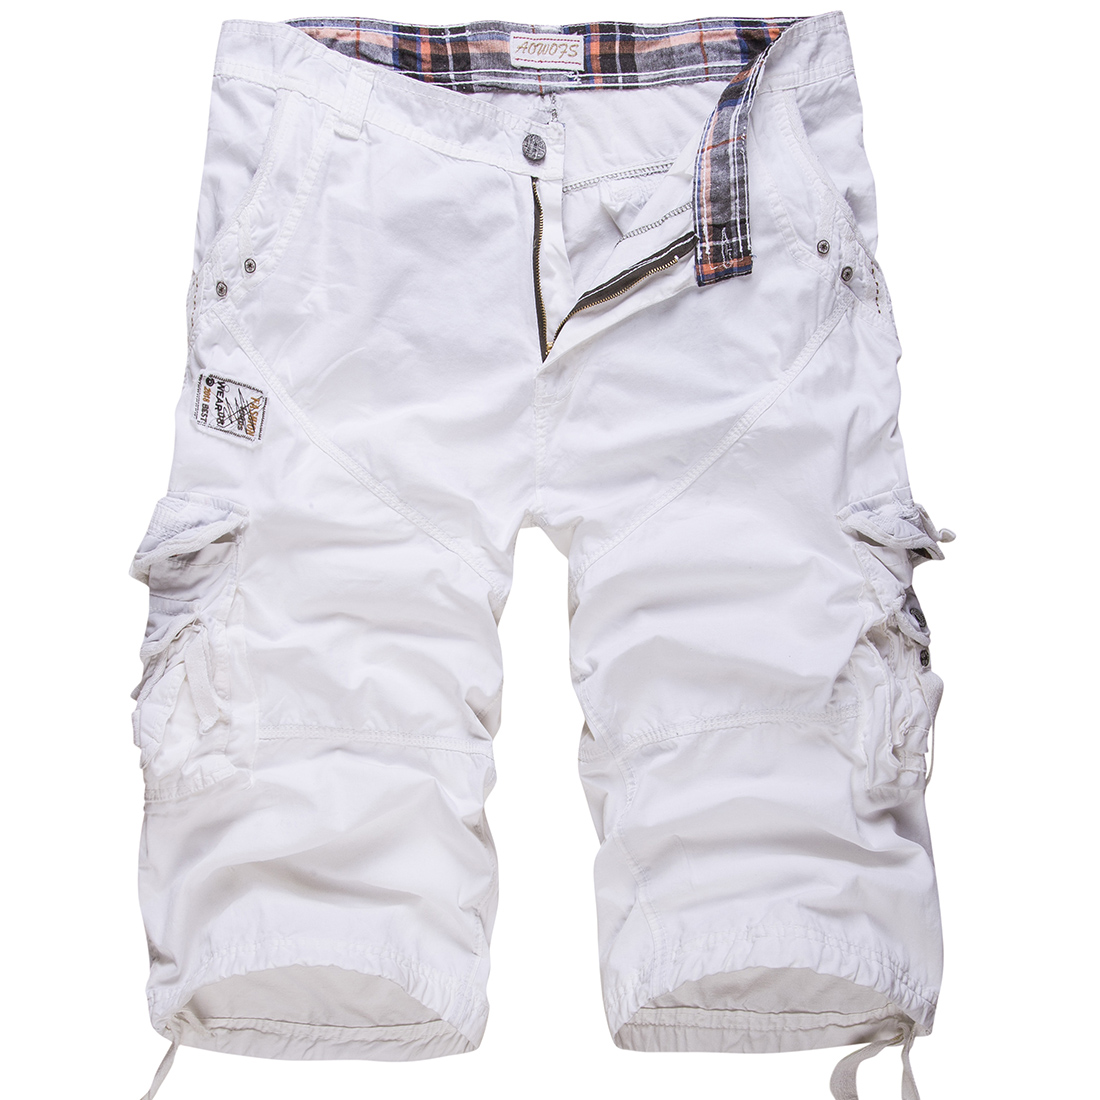 New cotton men's casual shorts loose large size cargo shorts solid color patchwork military shorts white knee length Tactical